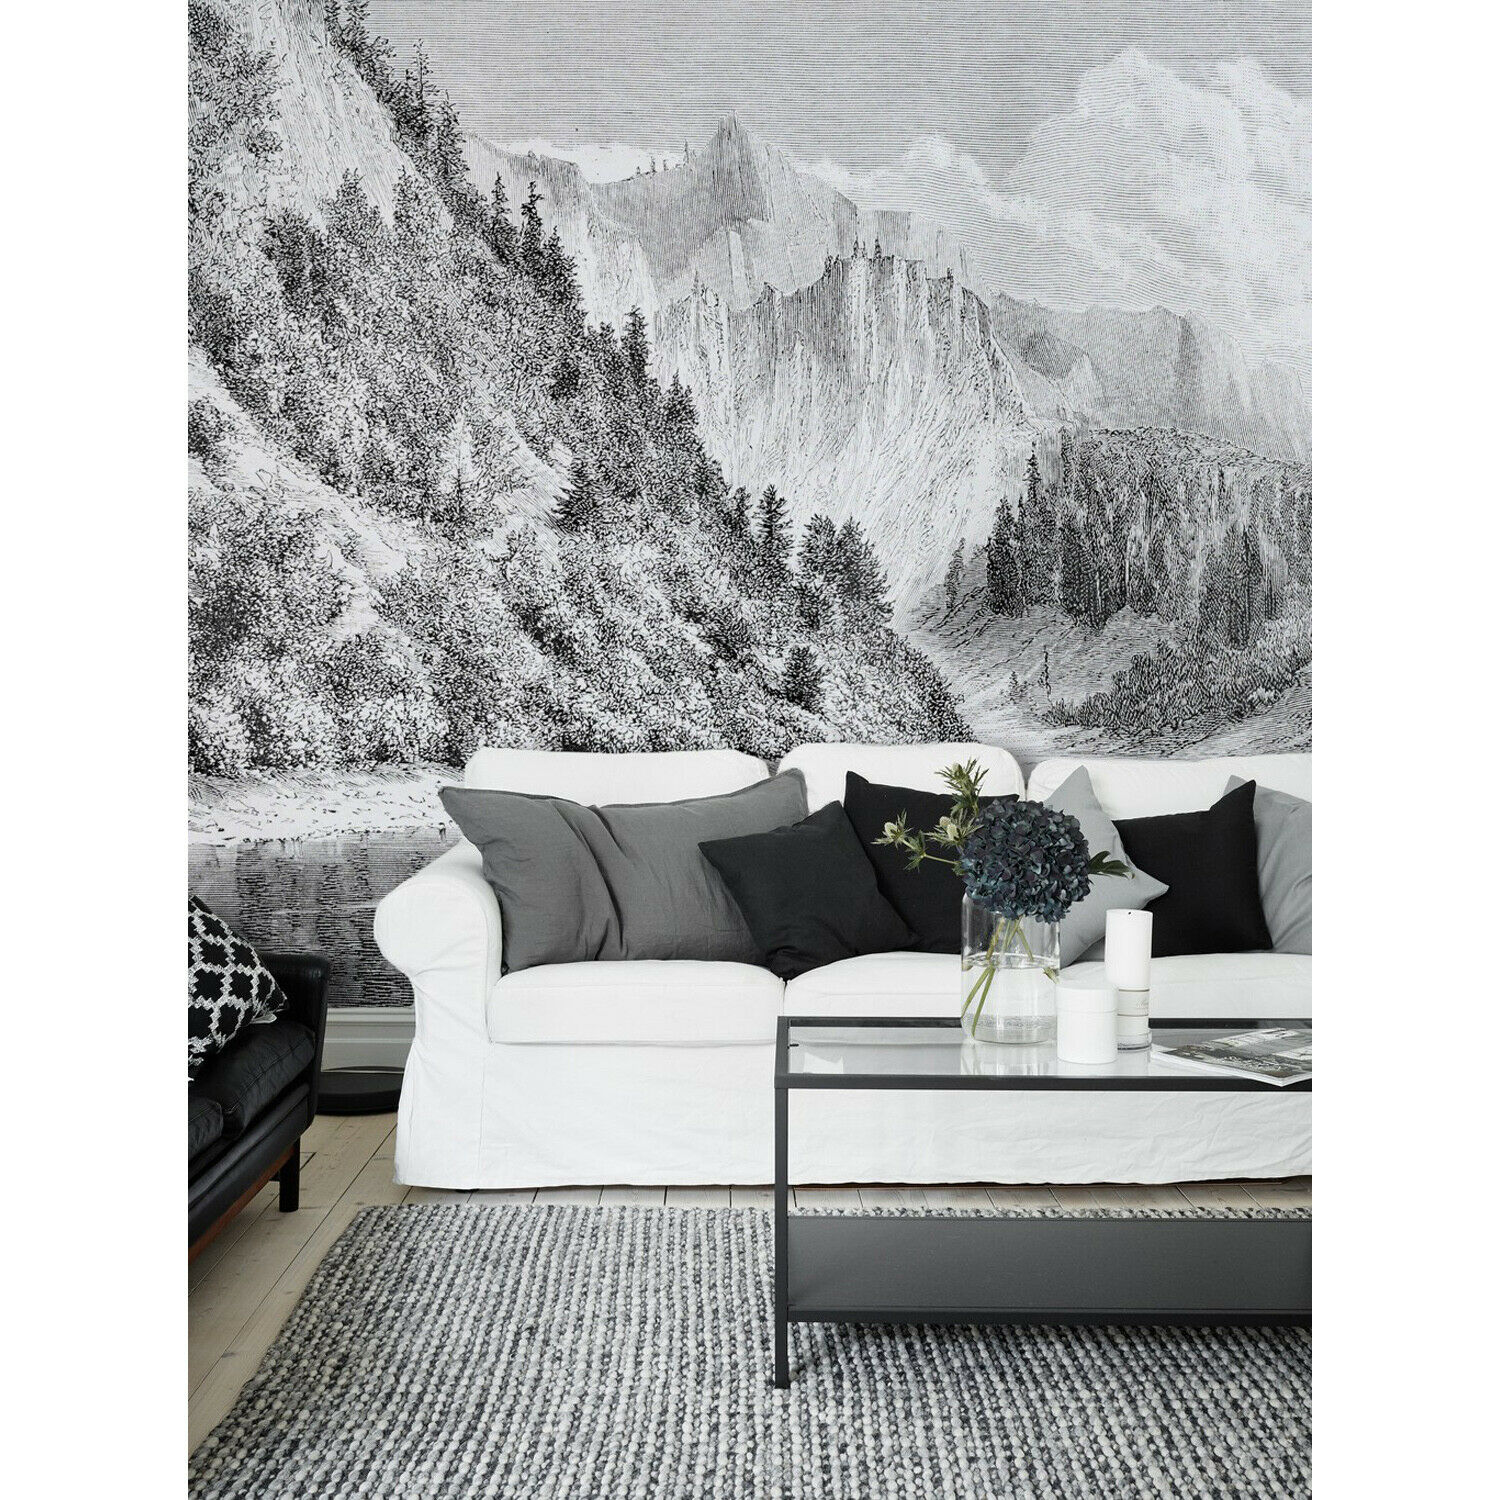 Hand Drawn Mountains landscape hills highlands forest wildland Wall Mural